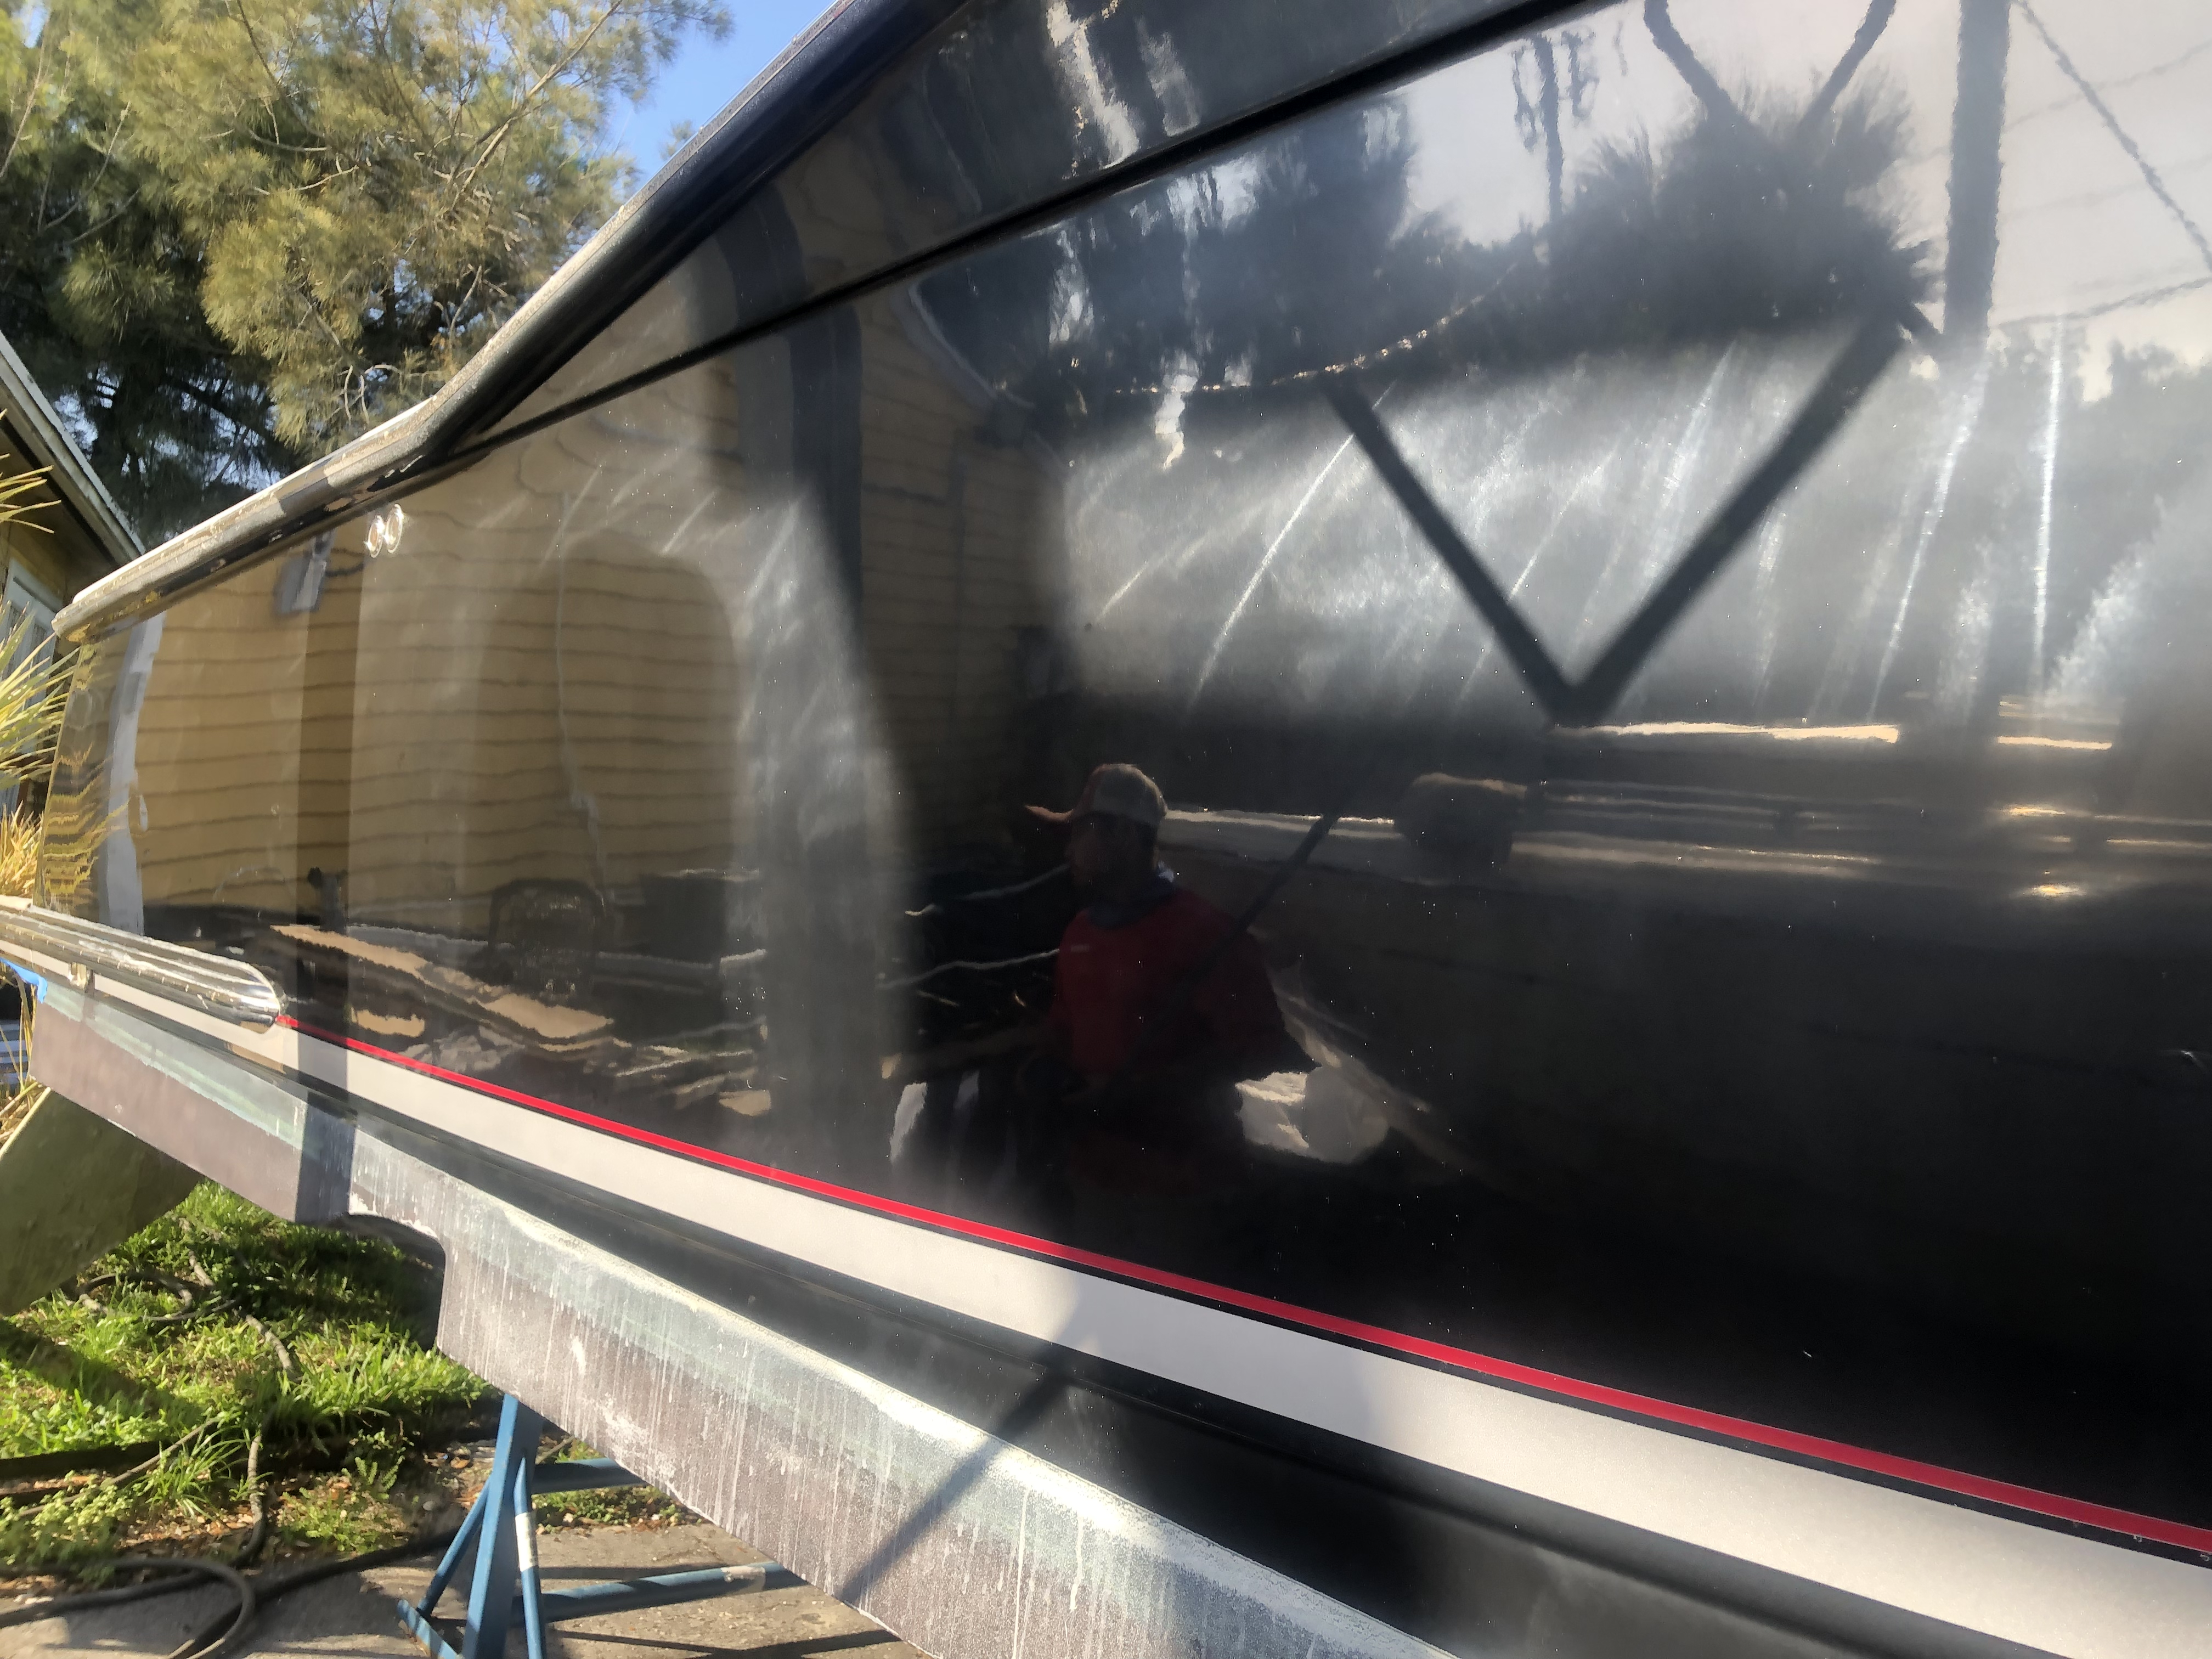 Oxidization on the black hull 35 Scout before Glidecoat ceramic coating application